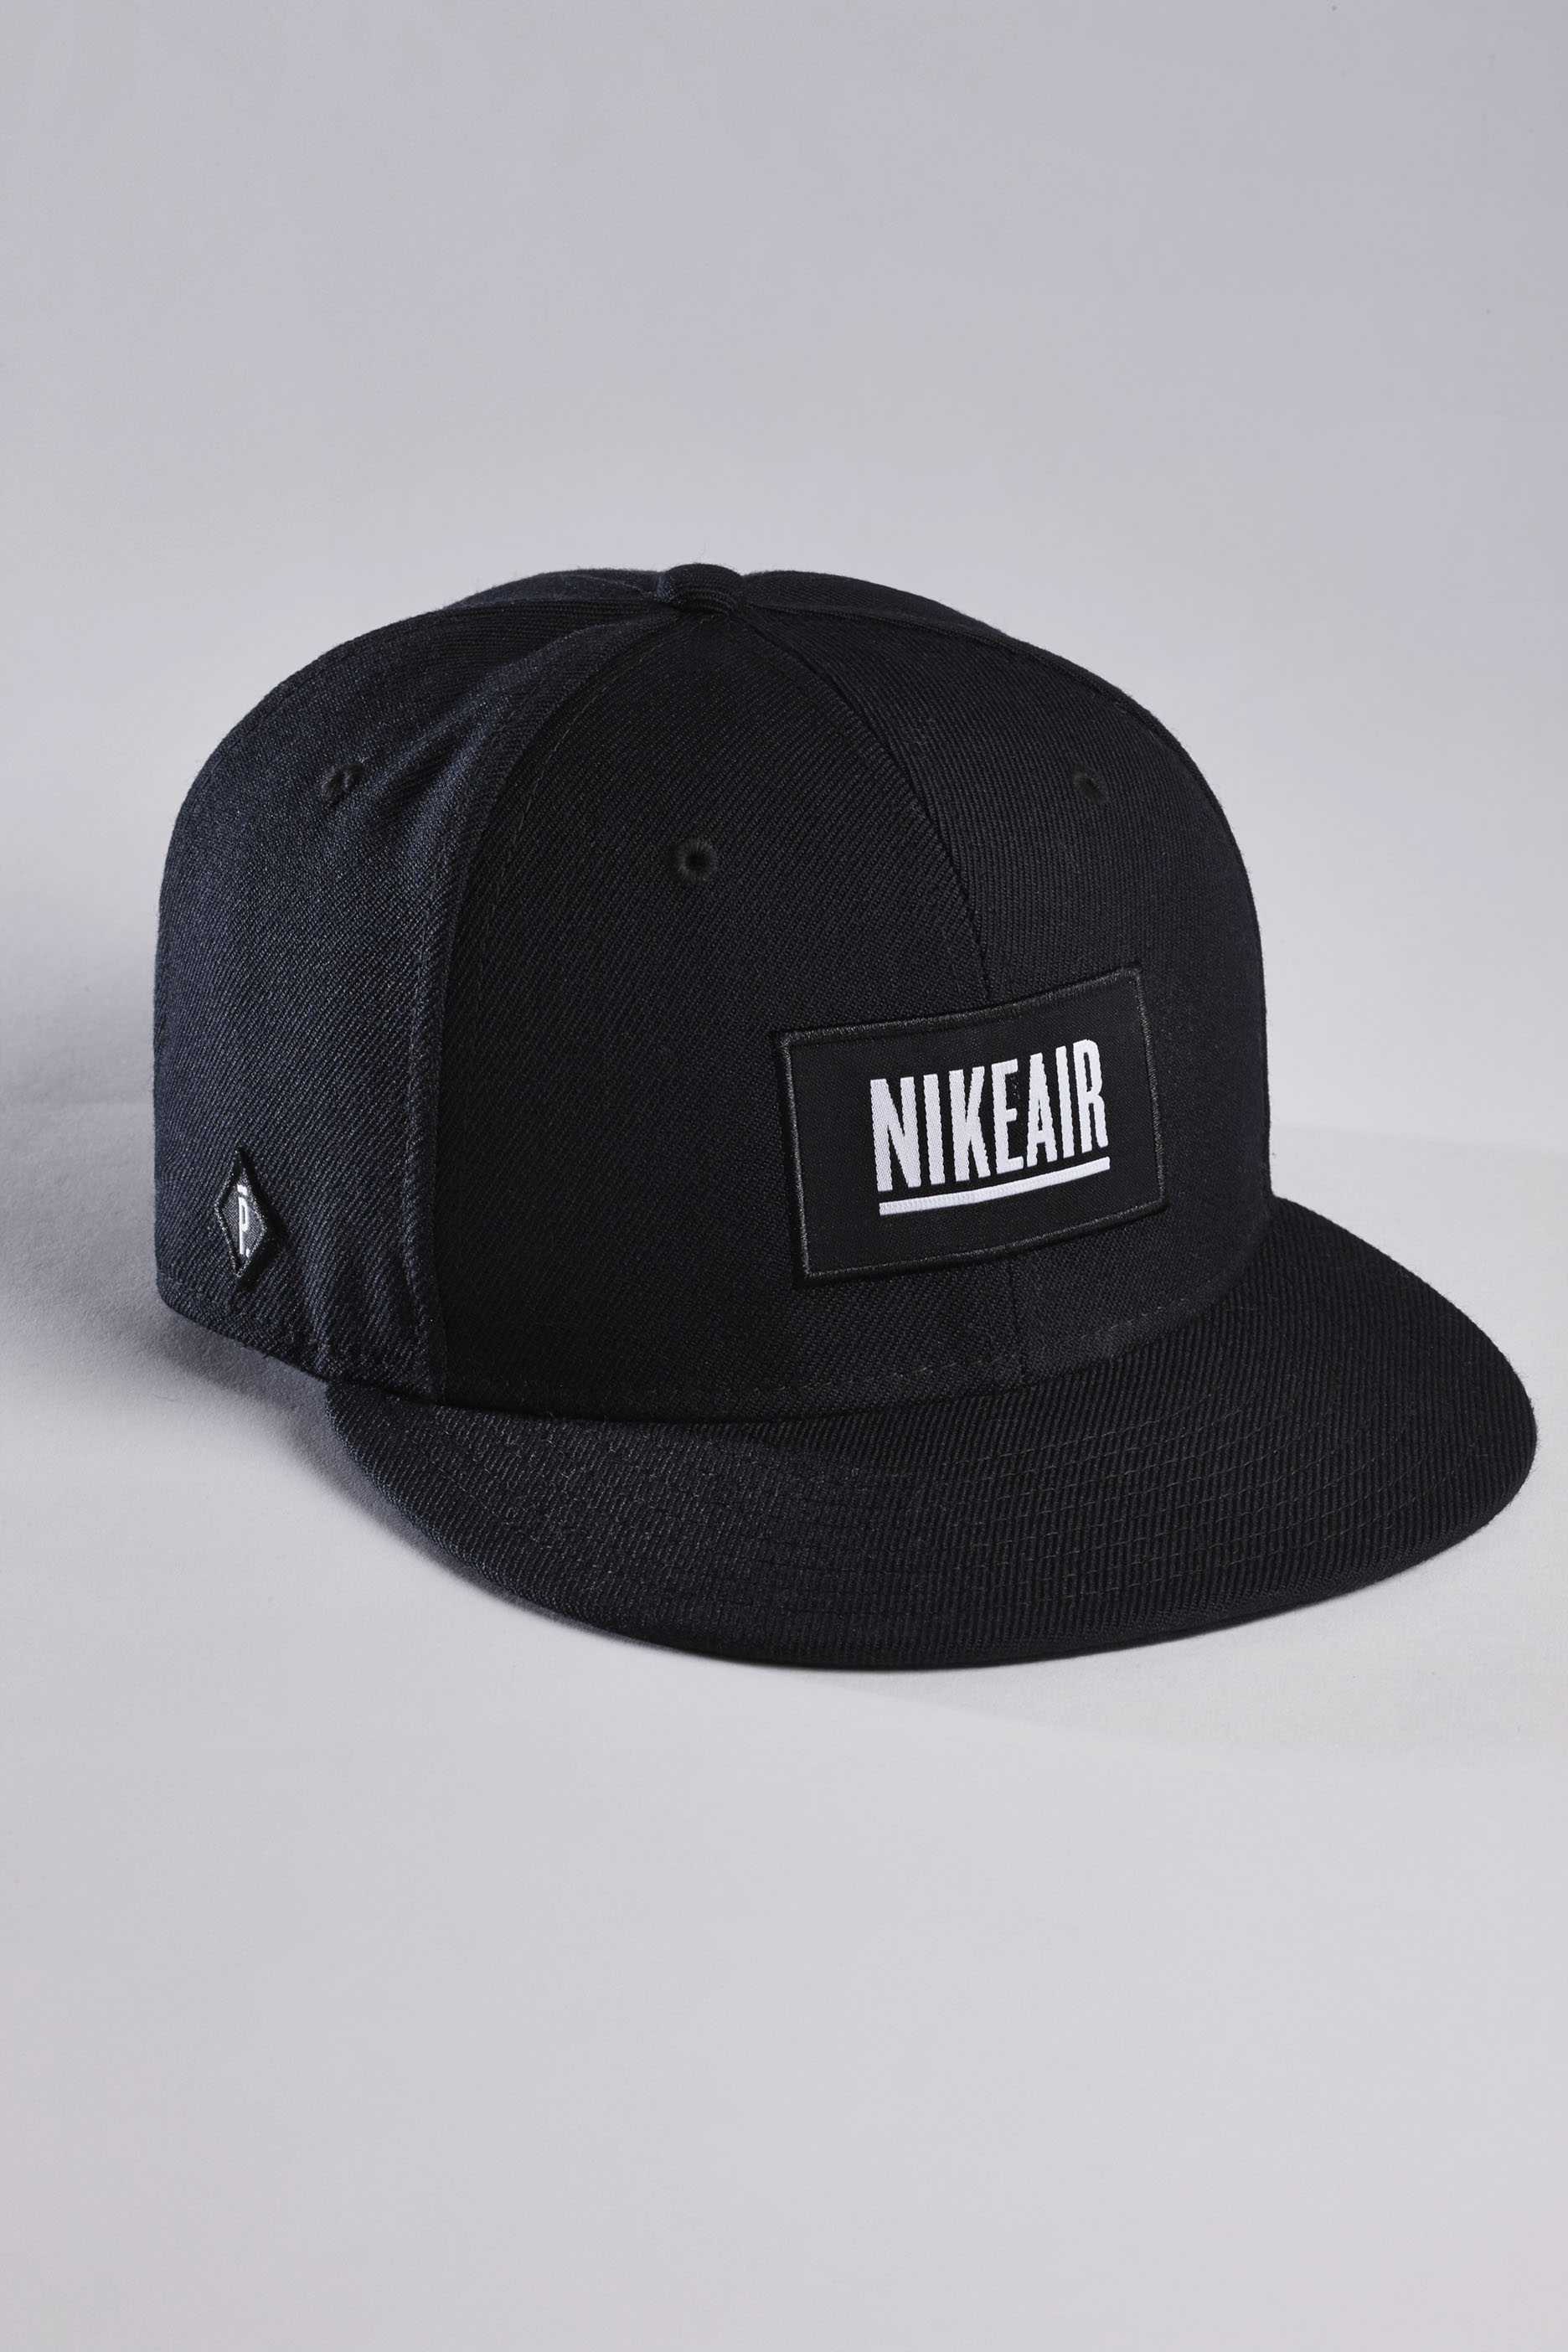 1397590290_nike_pigalle_hat